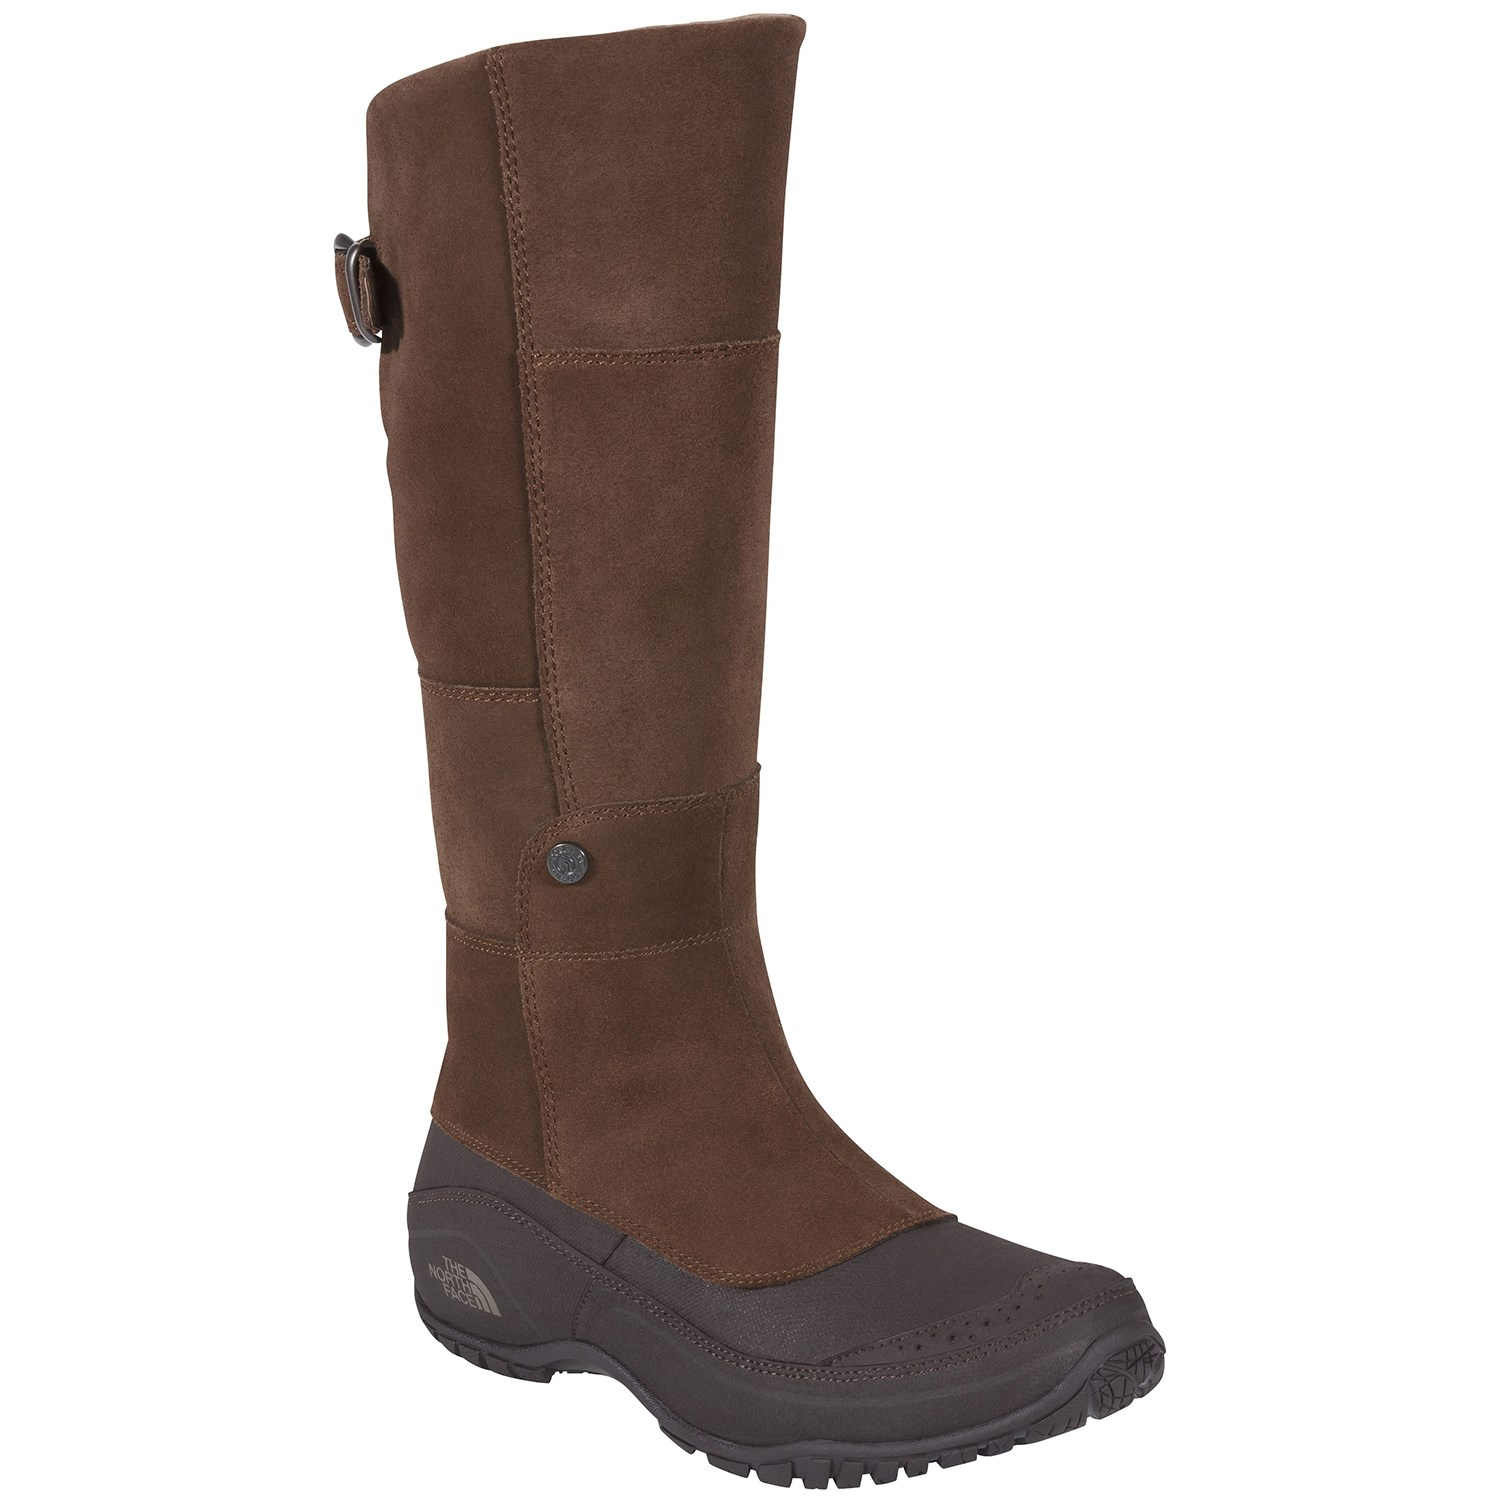 The North Face Anna Purna Tall Boots - Women's | evo